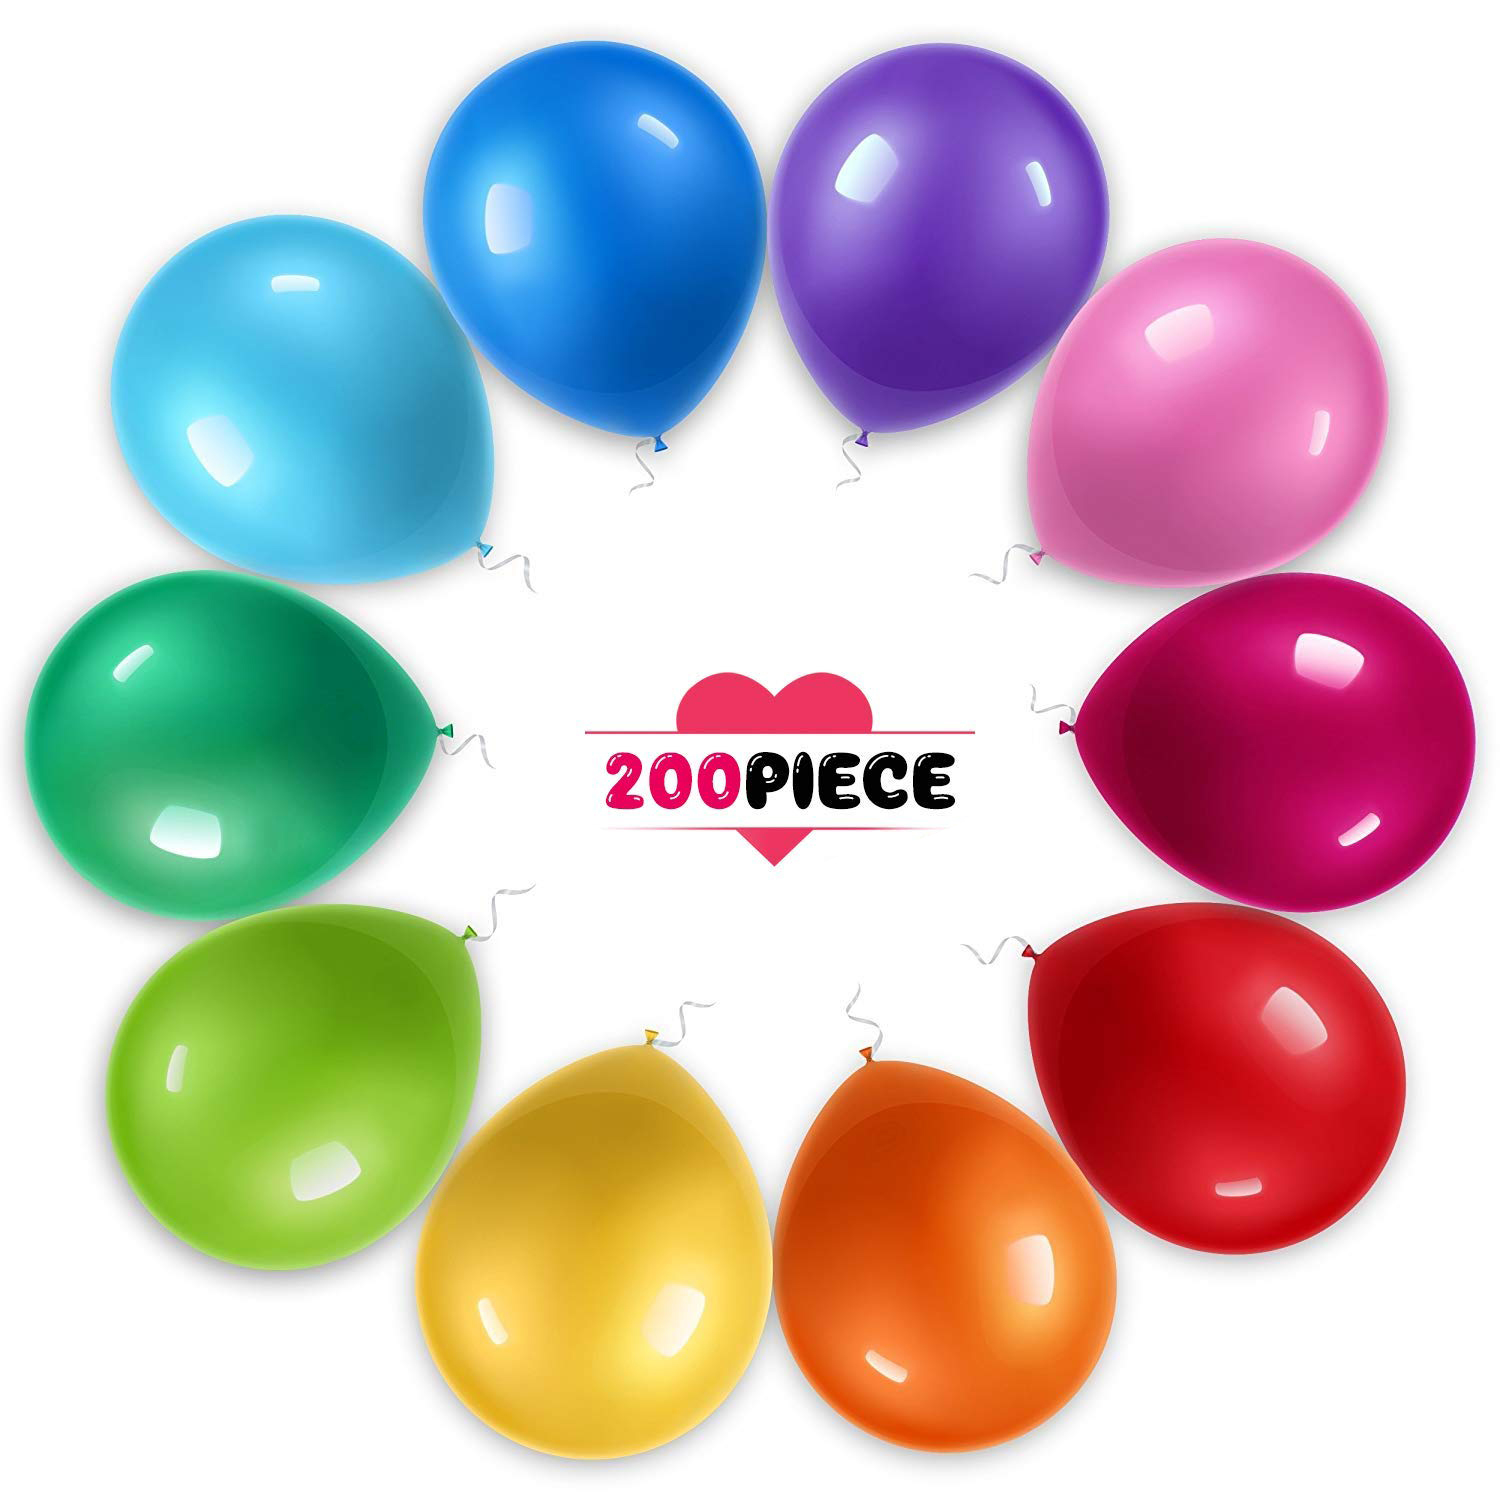 200pcs Party Balloons for Birthday, Graduation, Parties, Weddings, Baby Shower, Decoration